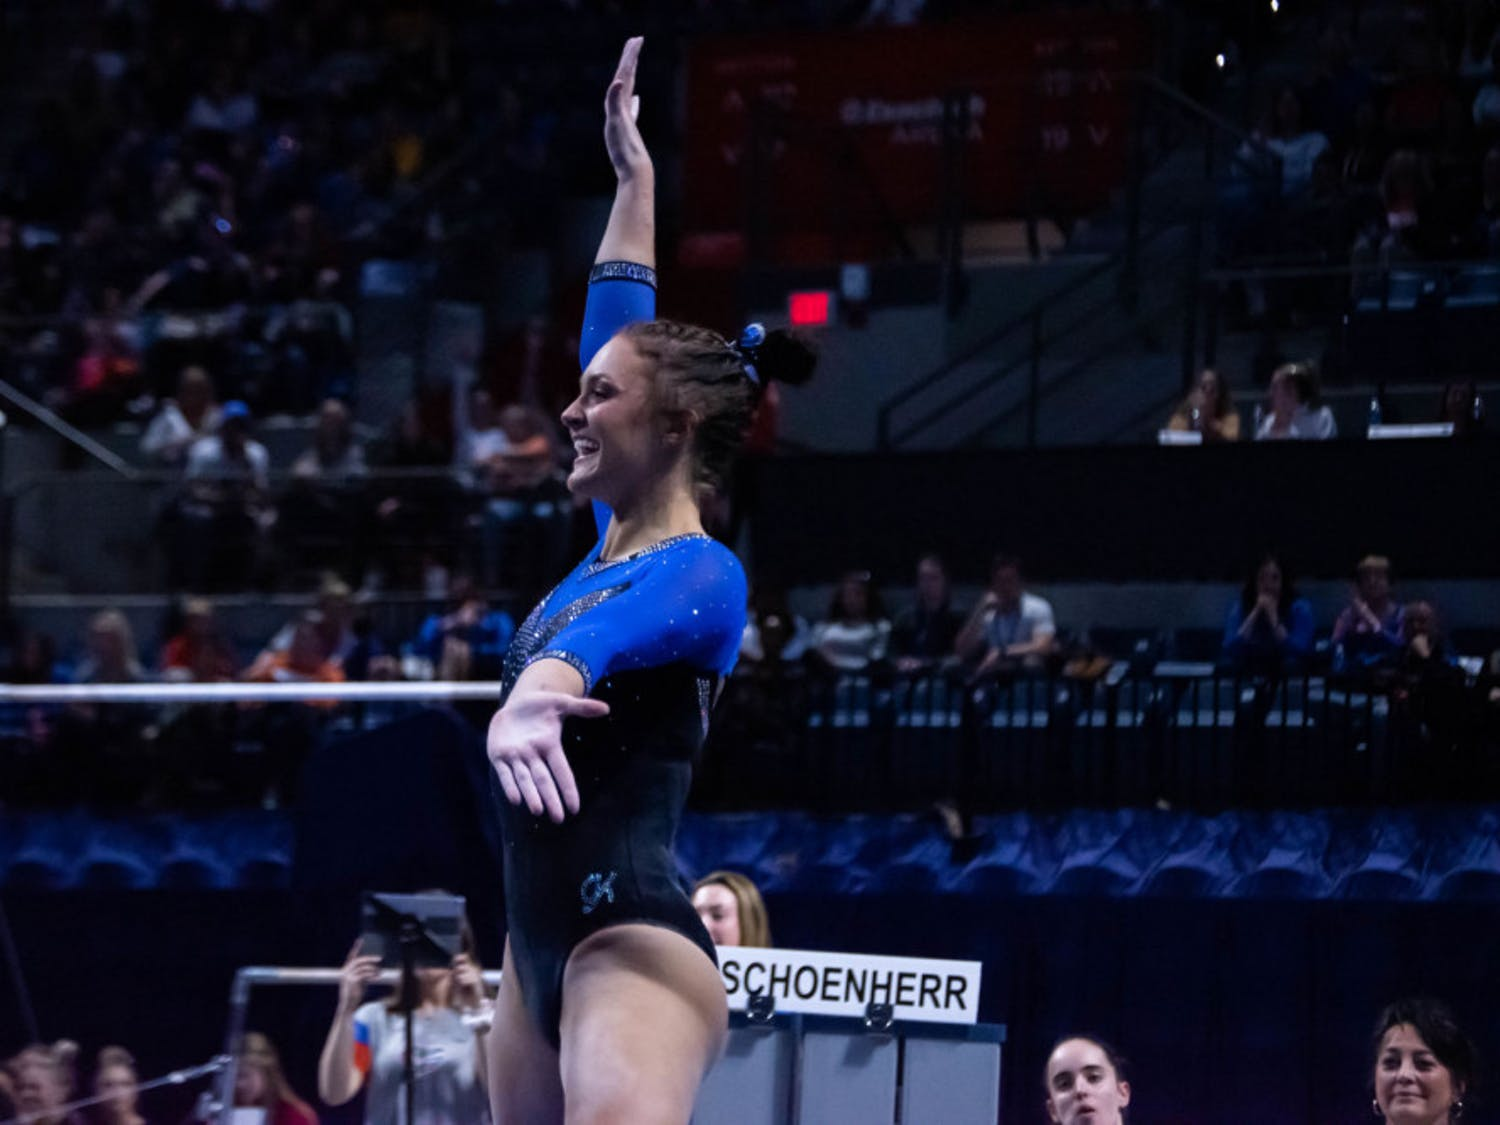 Florida's Savannah Schoenherr discussed her team's emphasis on staying calm ahead of a blockbuster showdown against No. 2 LSU on Friday